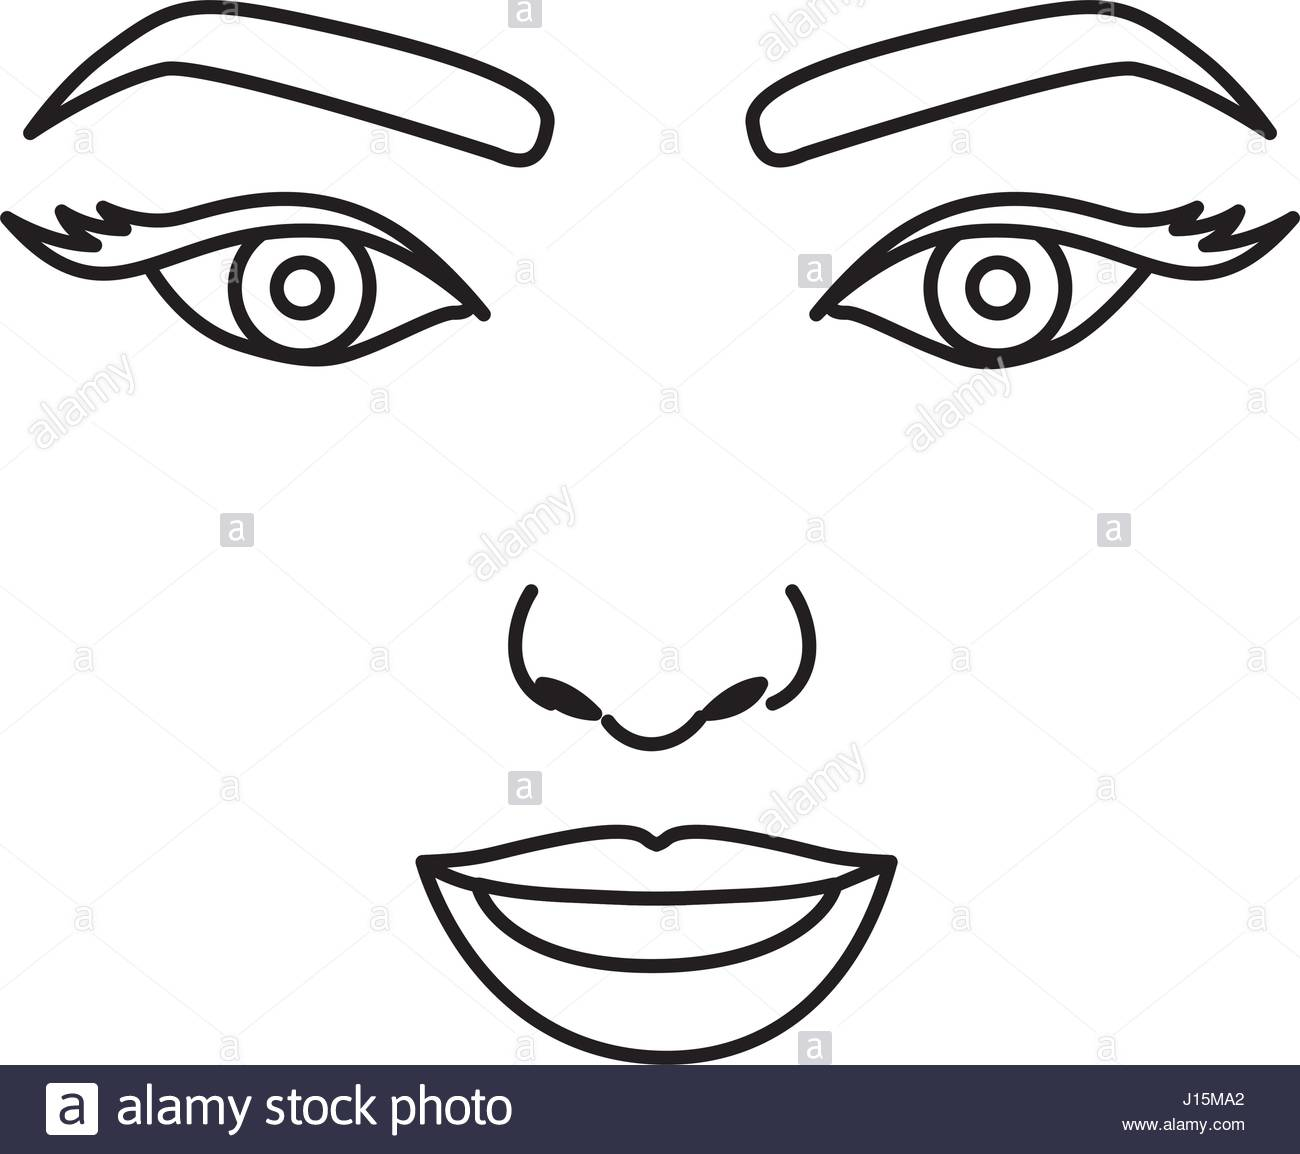 1300x1154 Silhouette Drawing Of Woman Face With Open Eyes And Smiling Stock